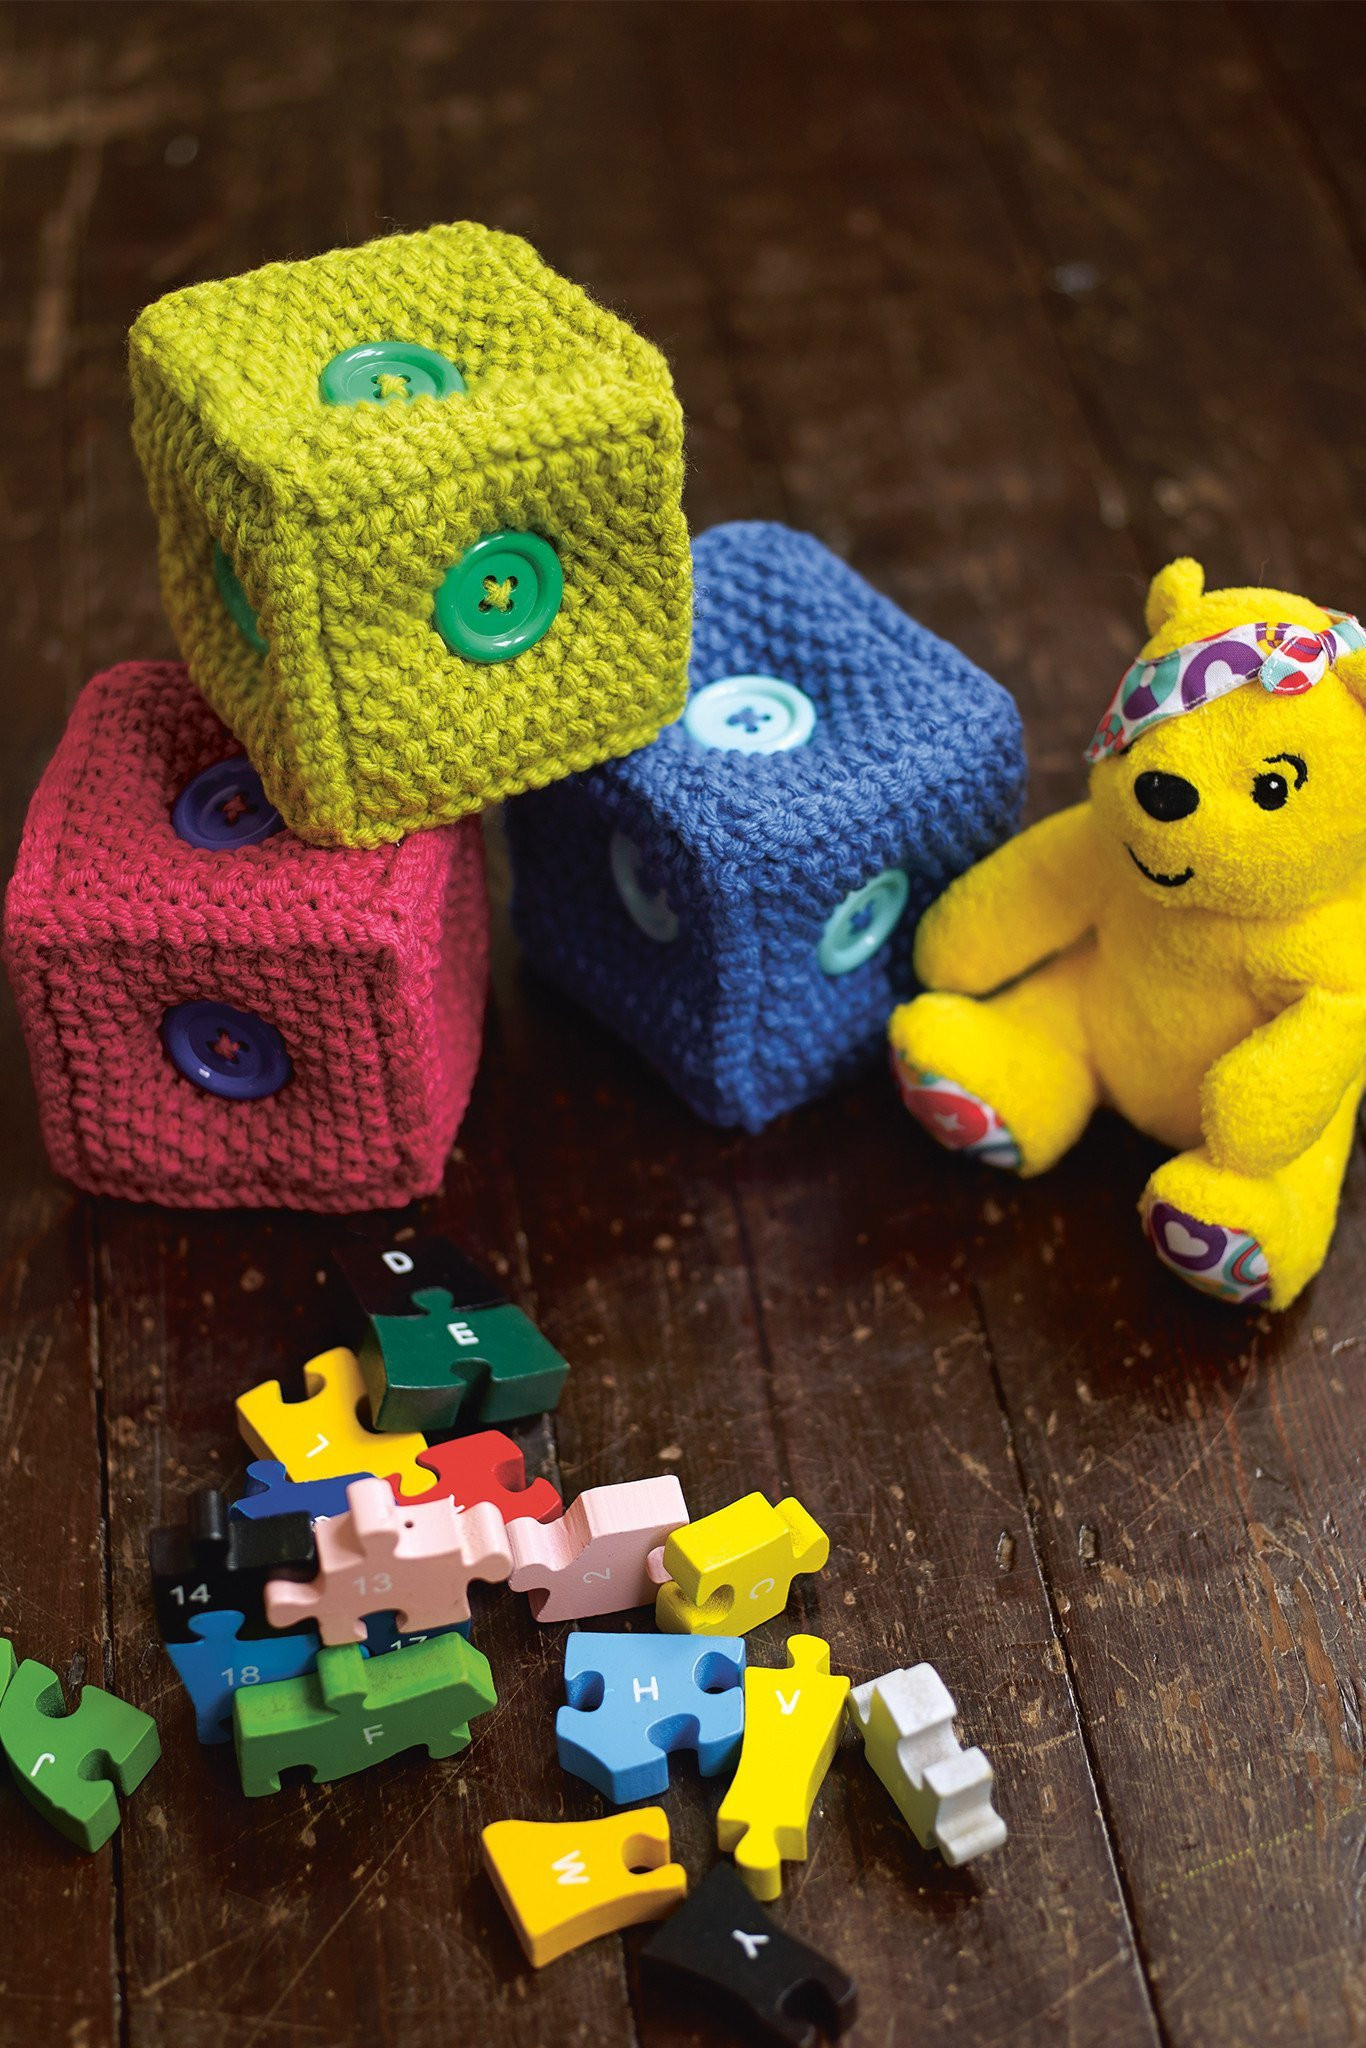 Knitting Patterns For Baby Toys Building Brick Toys Knitting Pattern